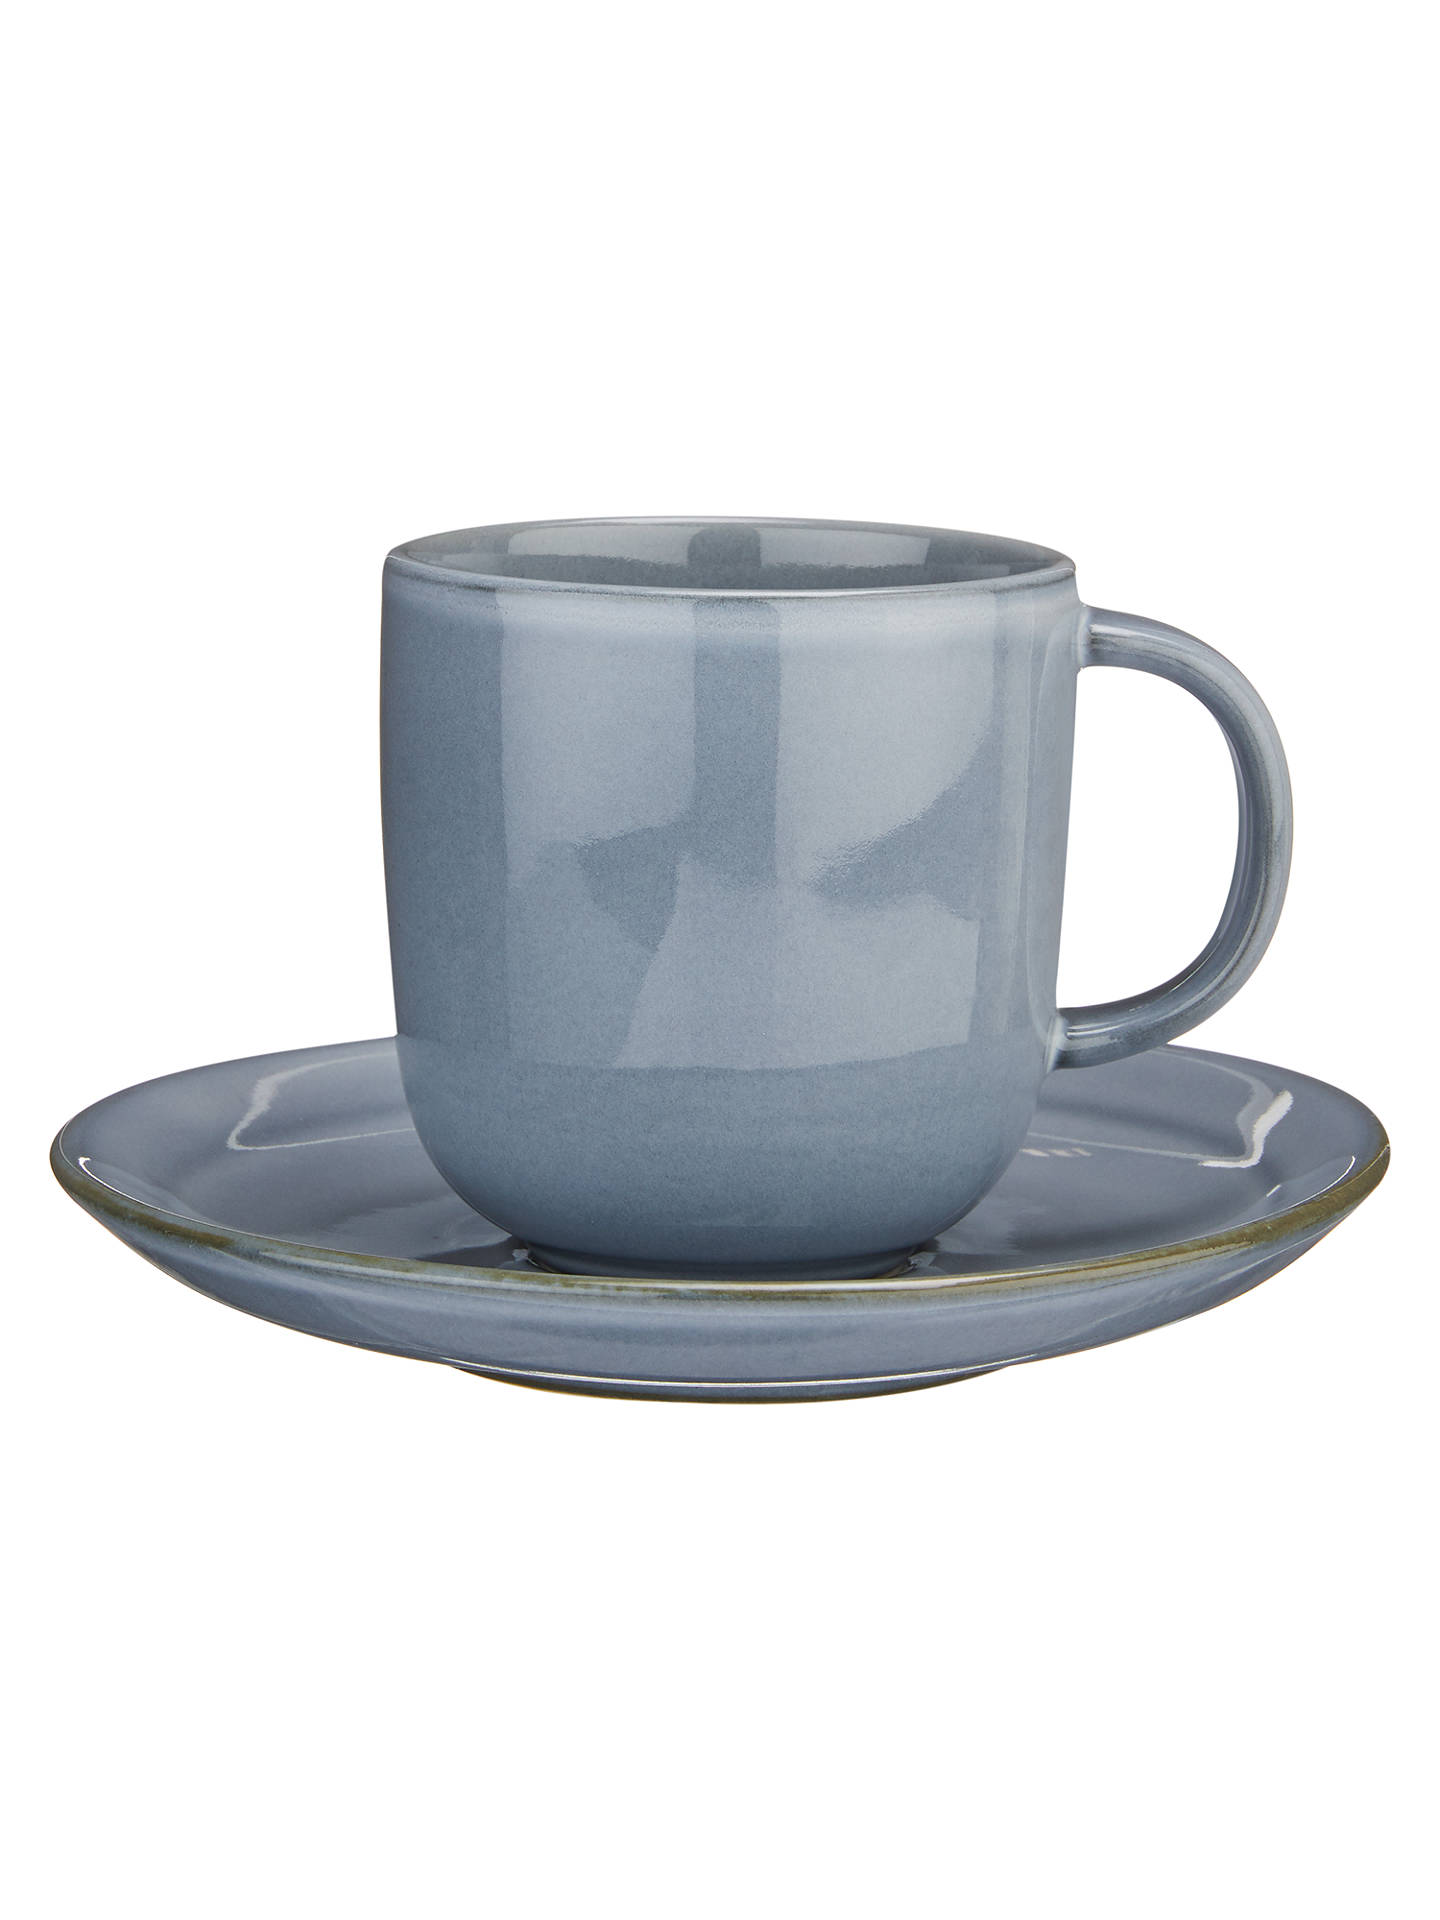 Buy John Lewis & Partners Glaze Double Cup and Saucer, 180ml, Blue Online at johnlewis.com